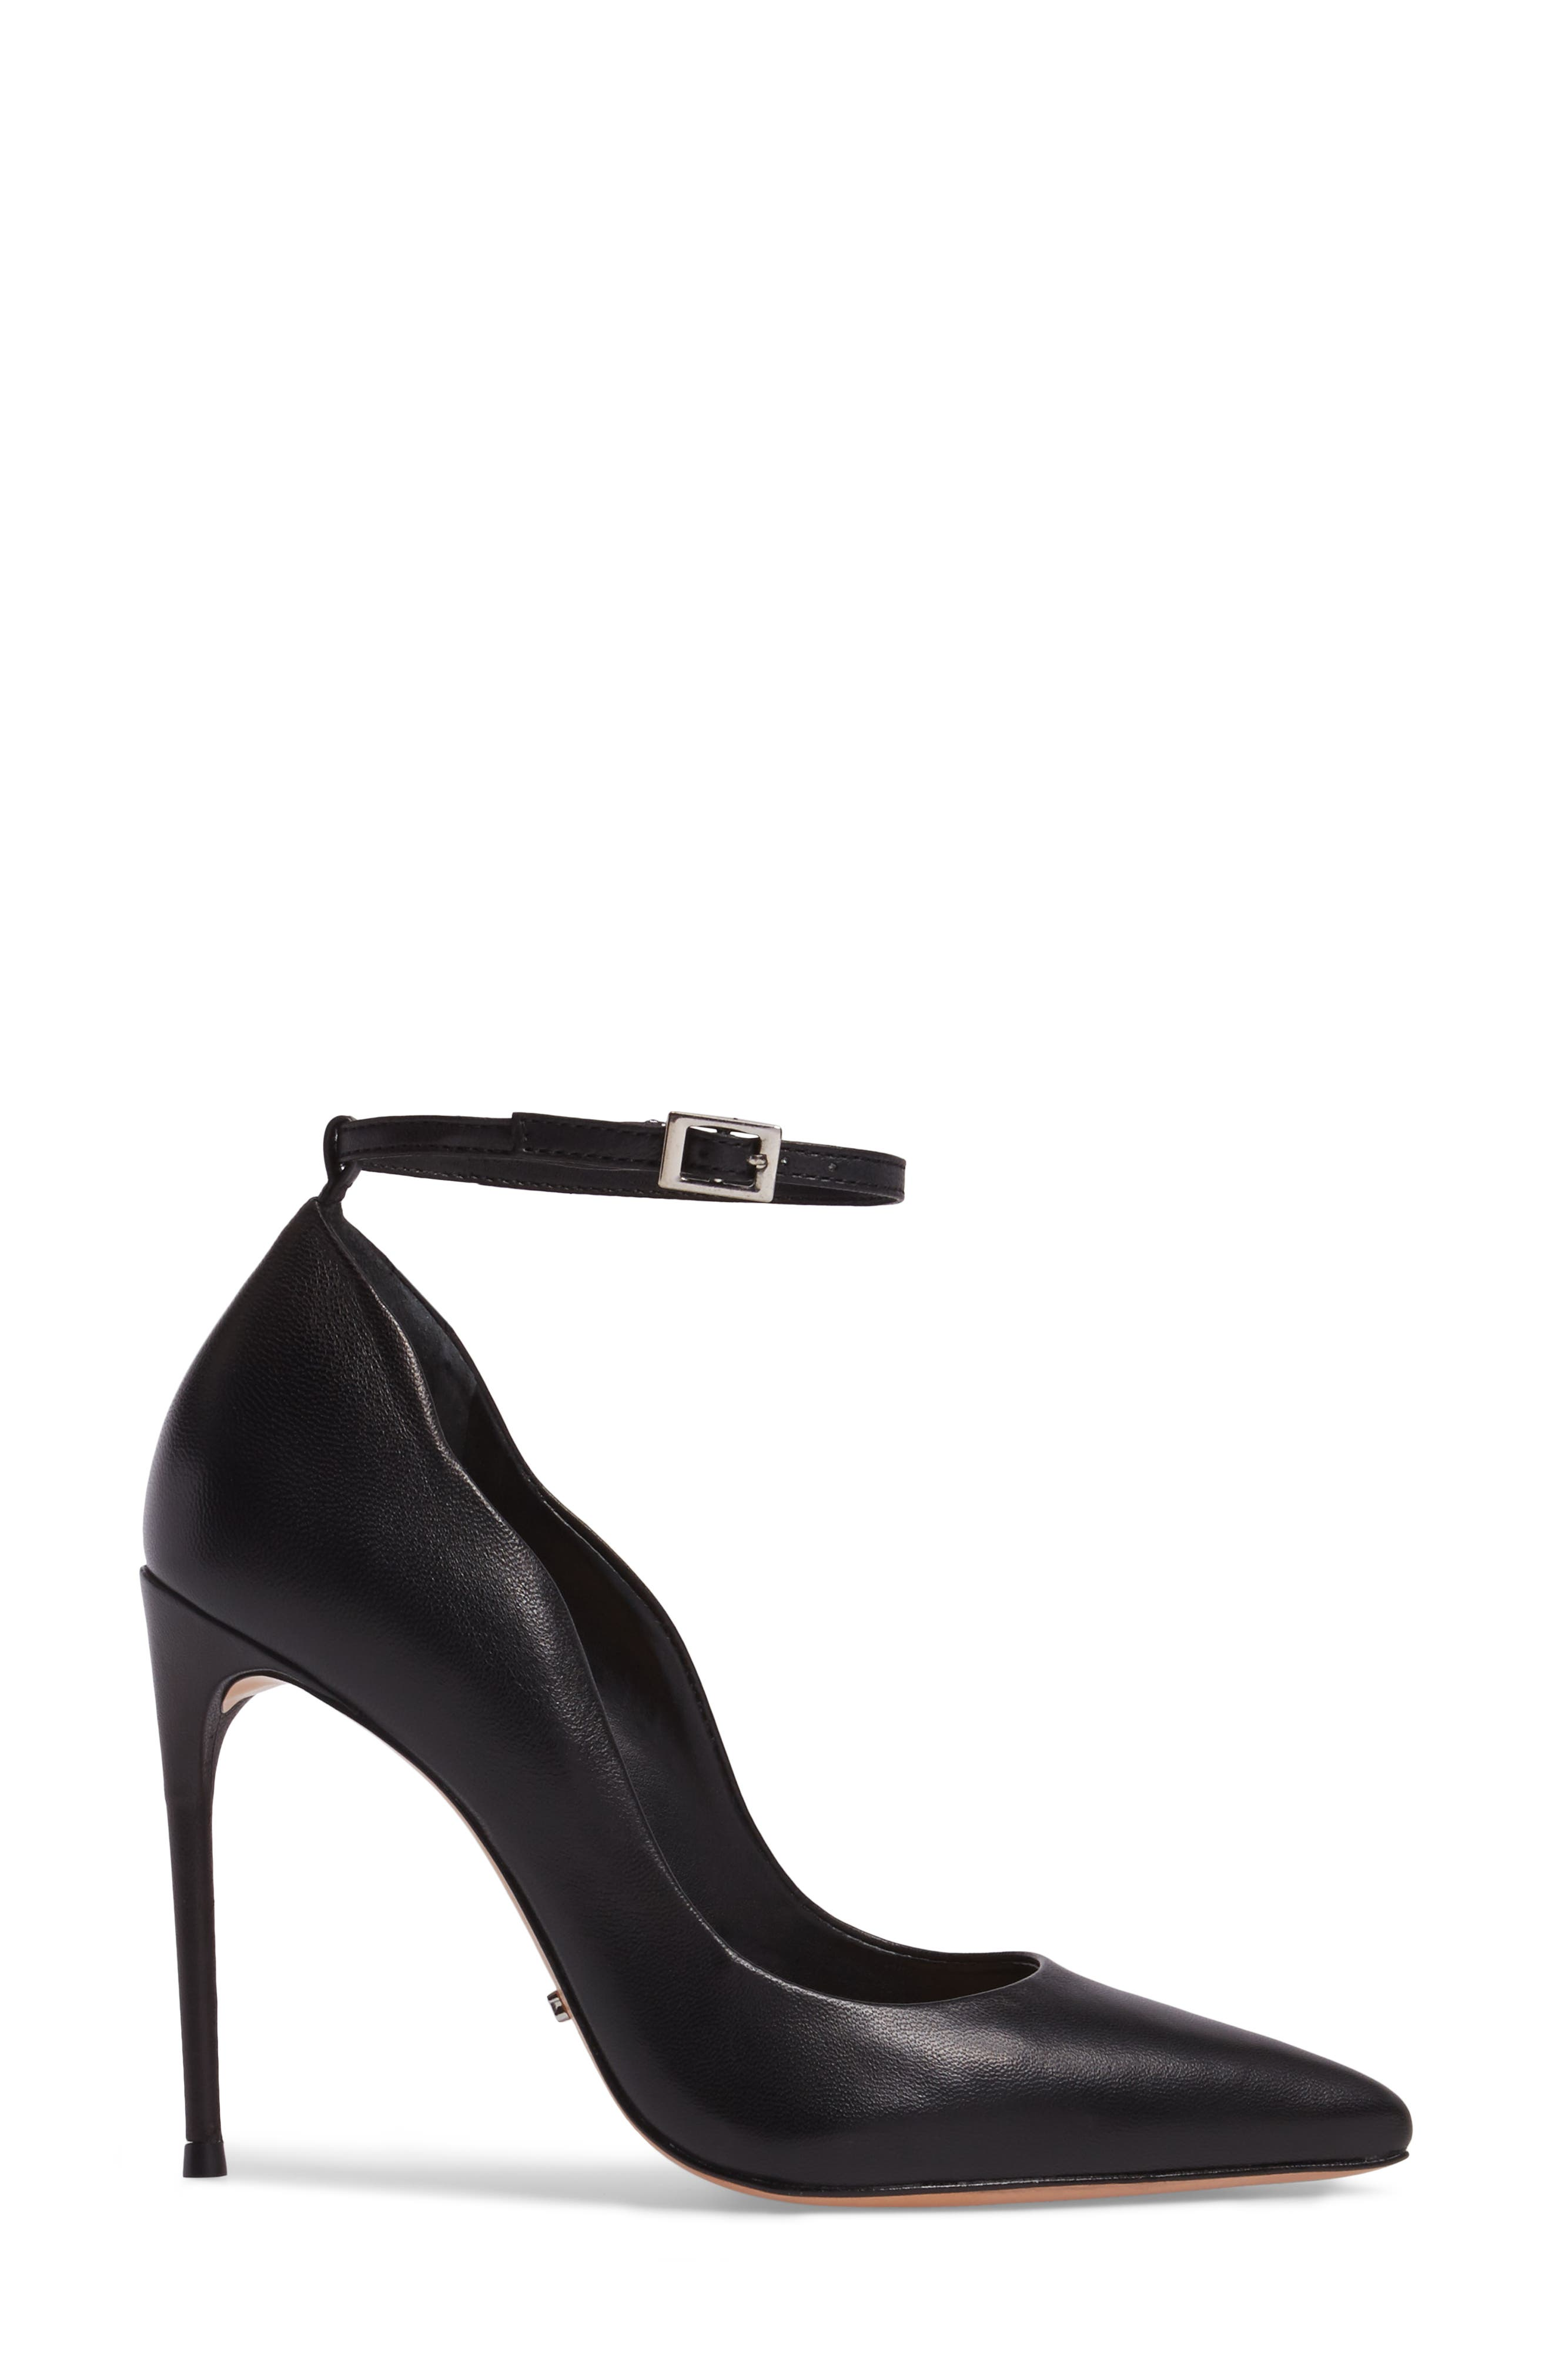 Thaynara Ankle Strap Pump,                             Alternate thumbnail 3, color,                             001